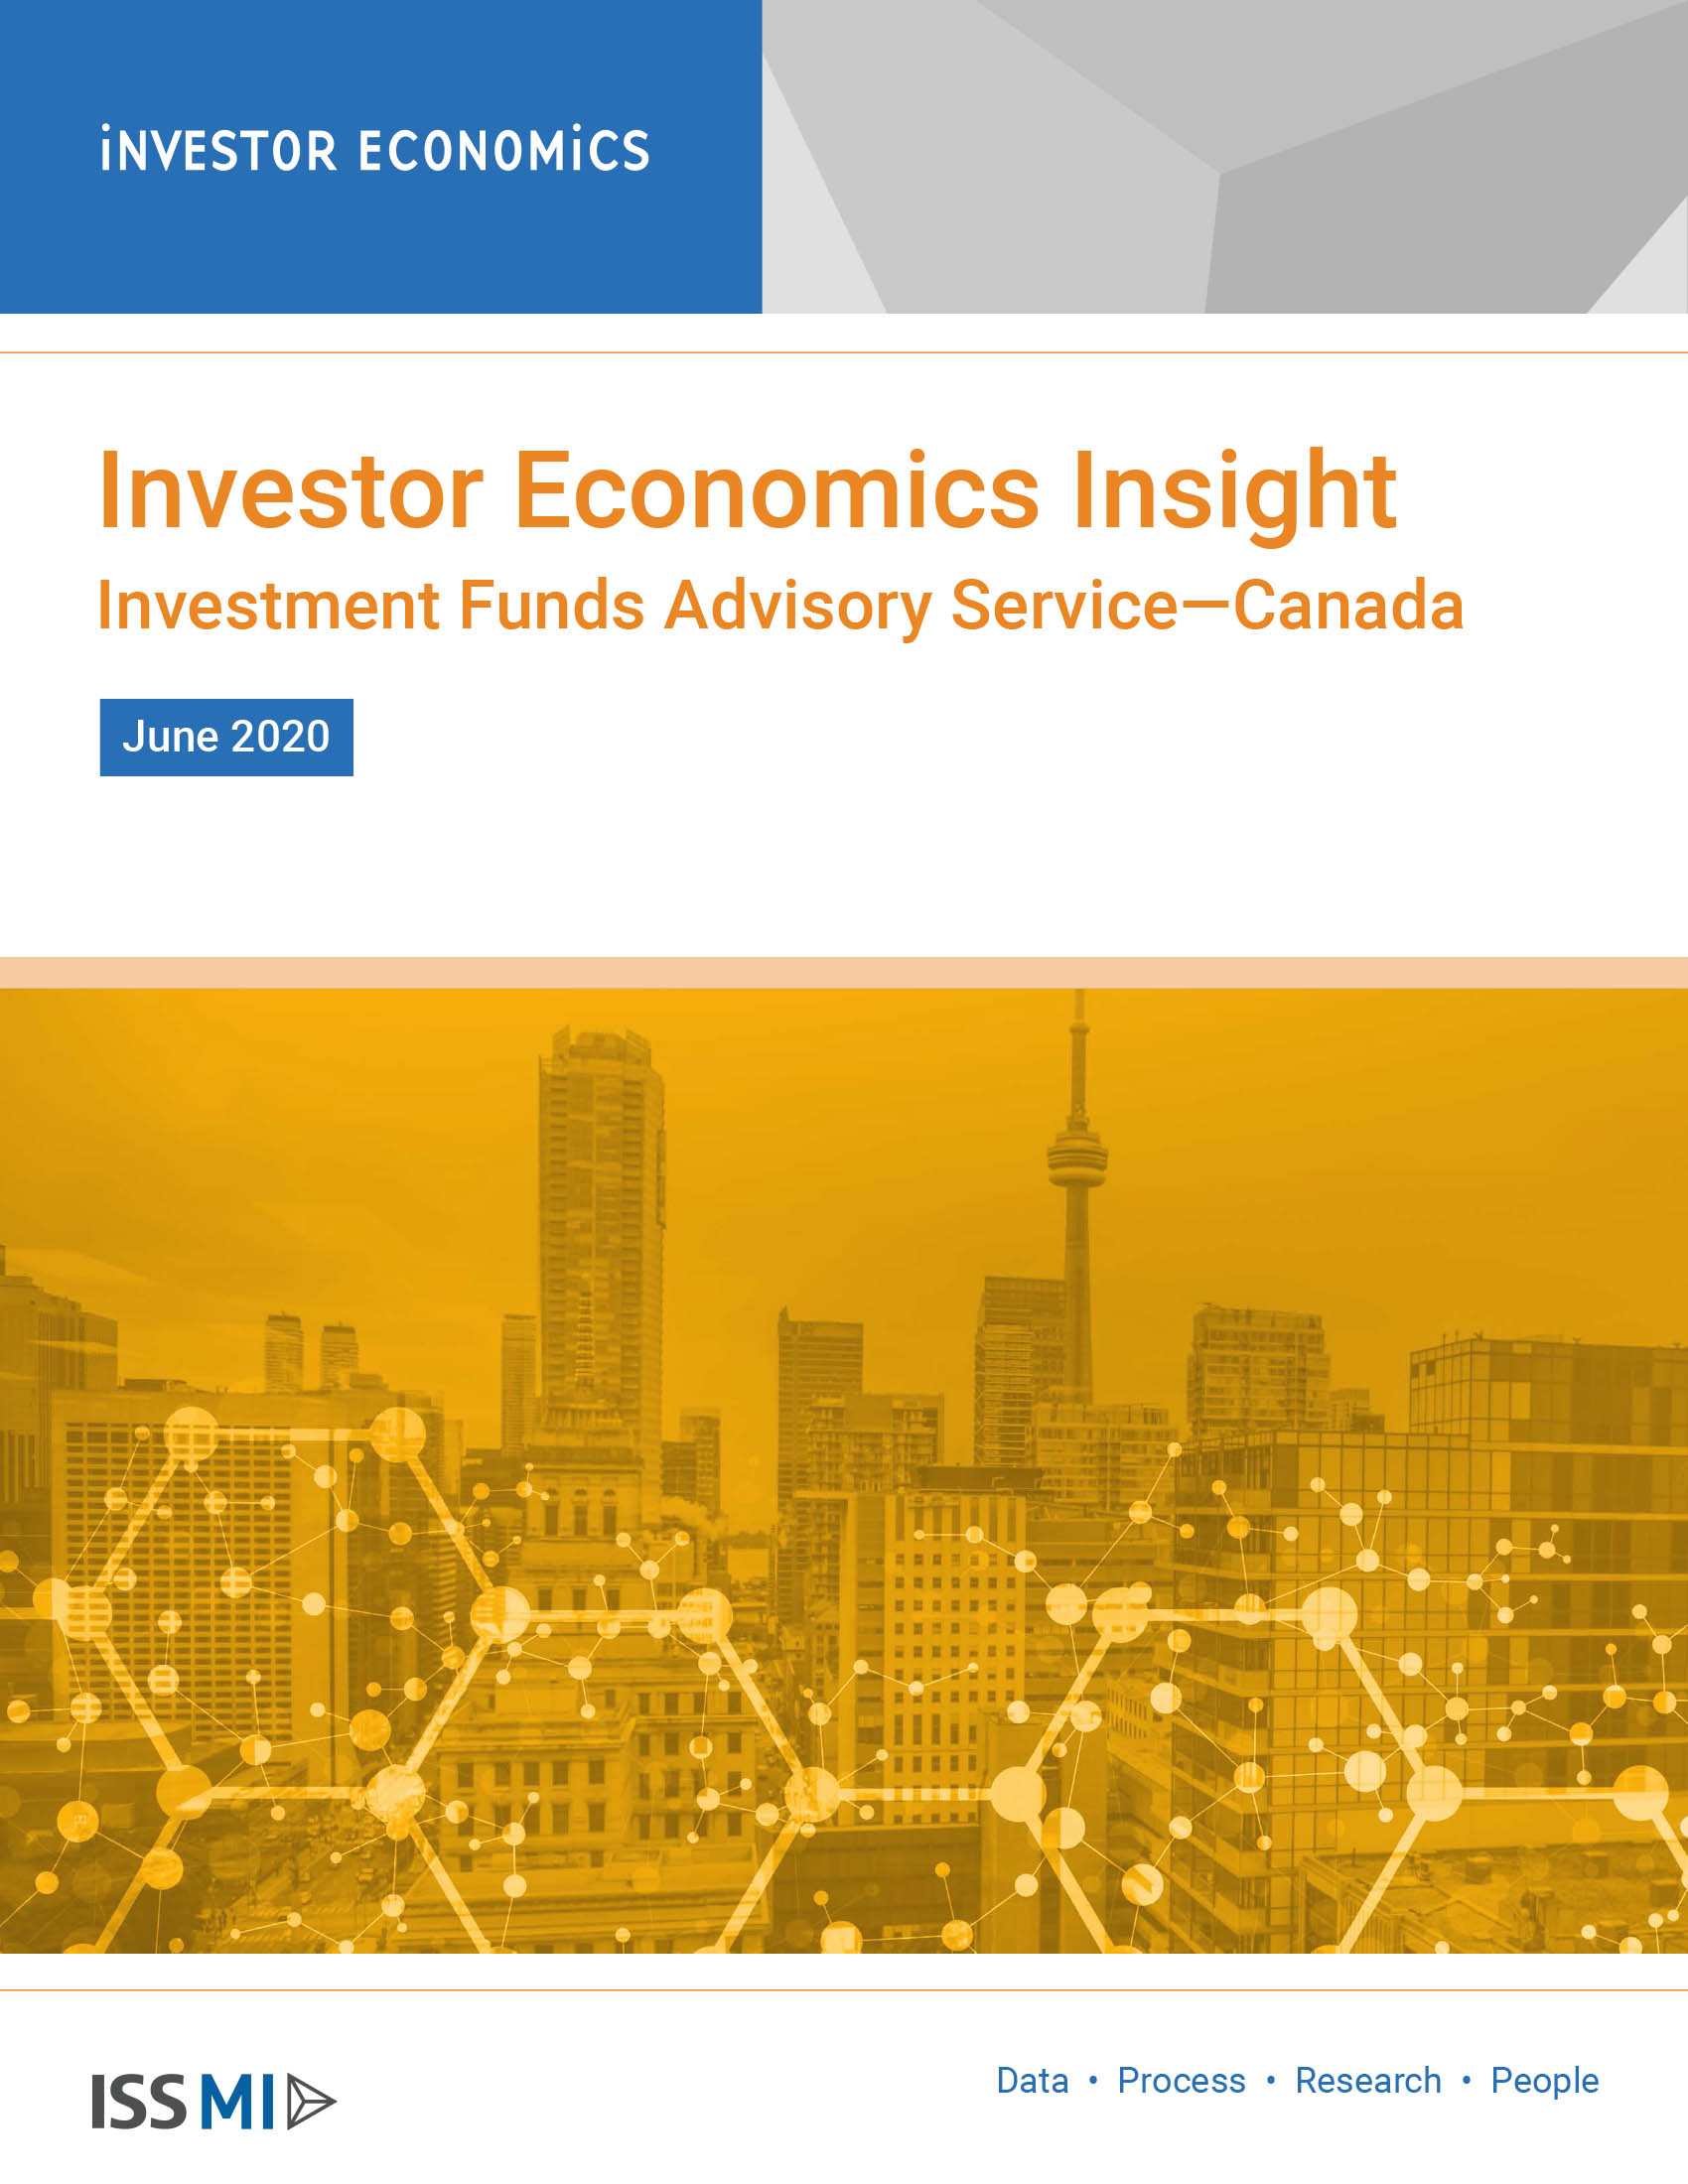 Investor Economics Insight June 2020